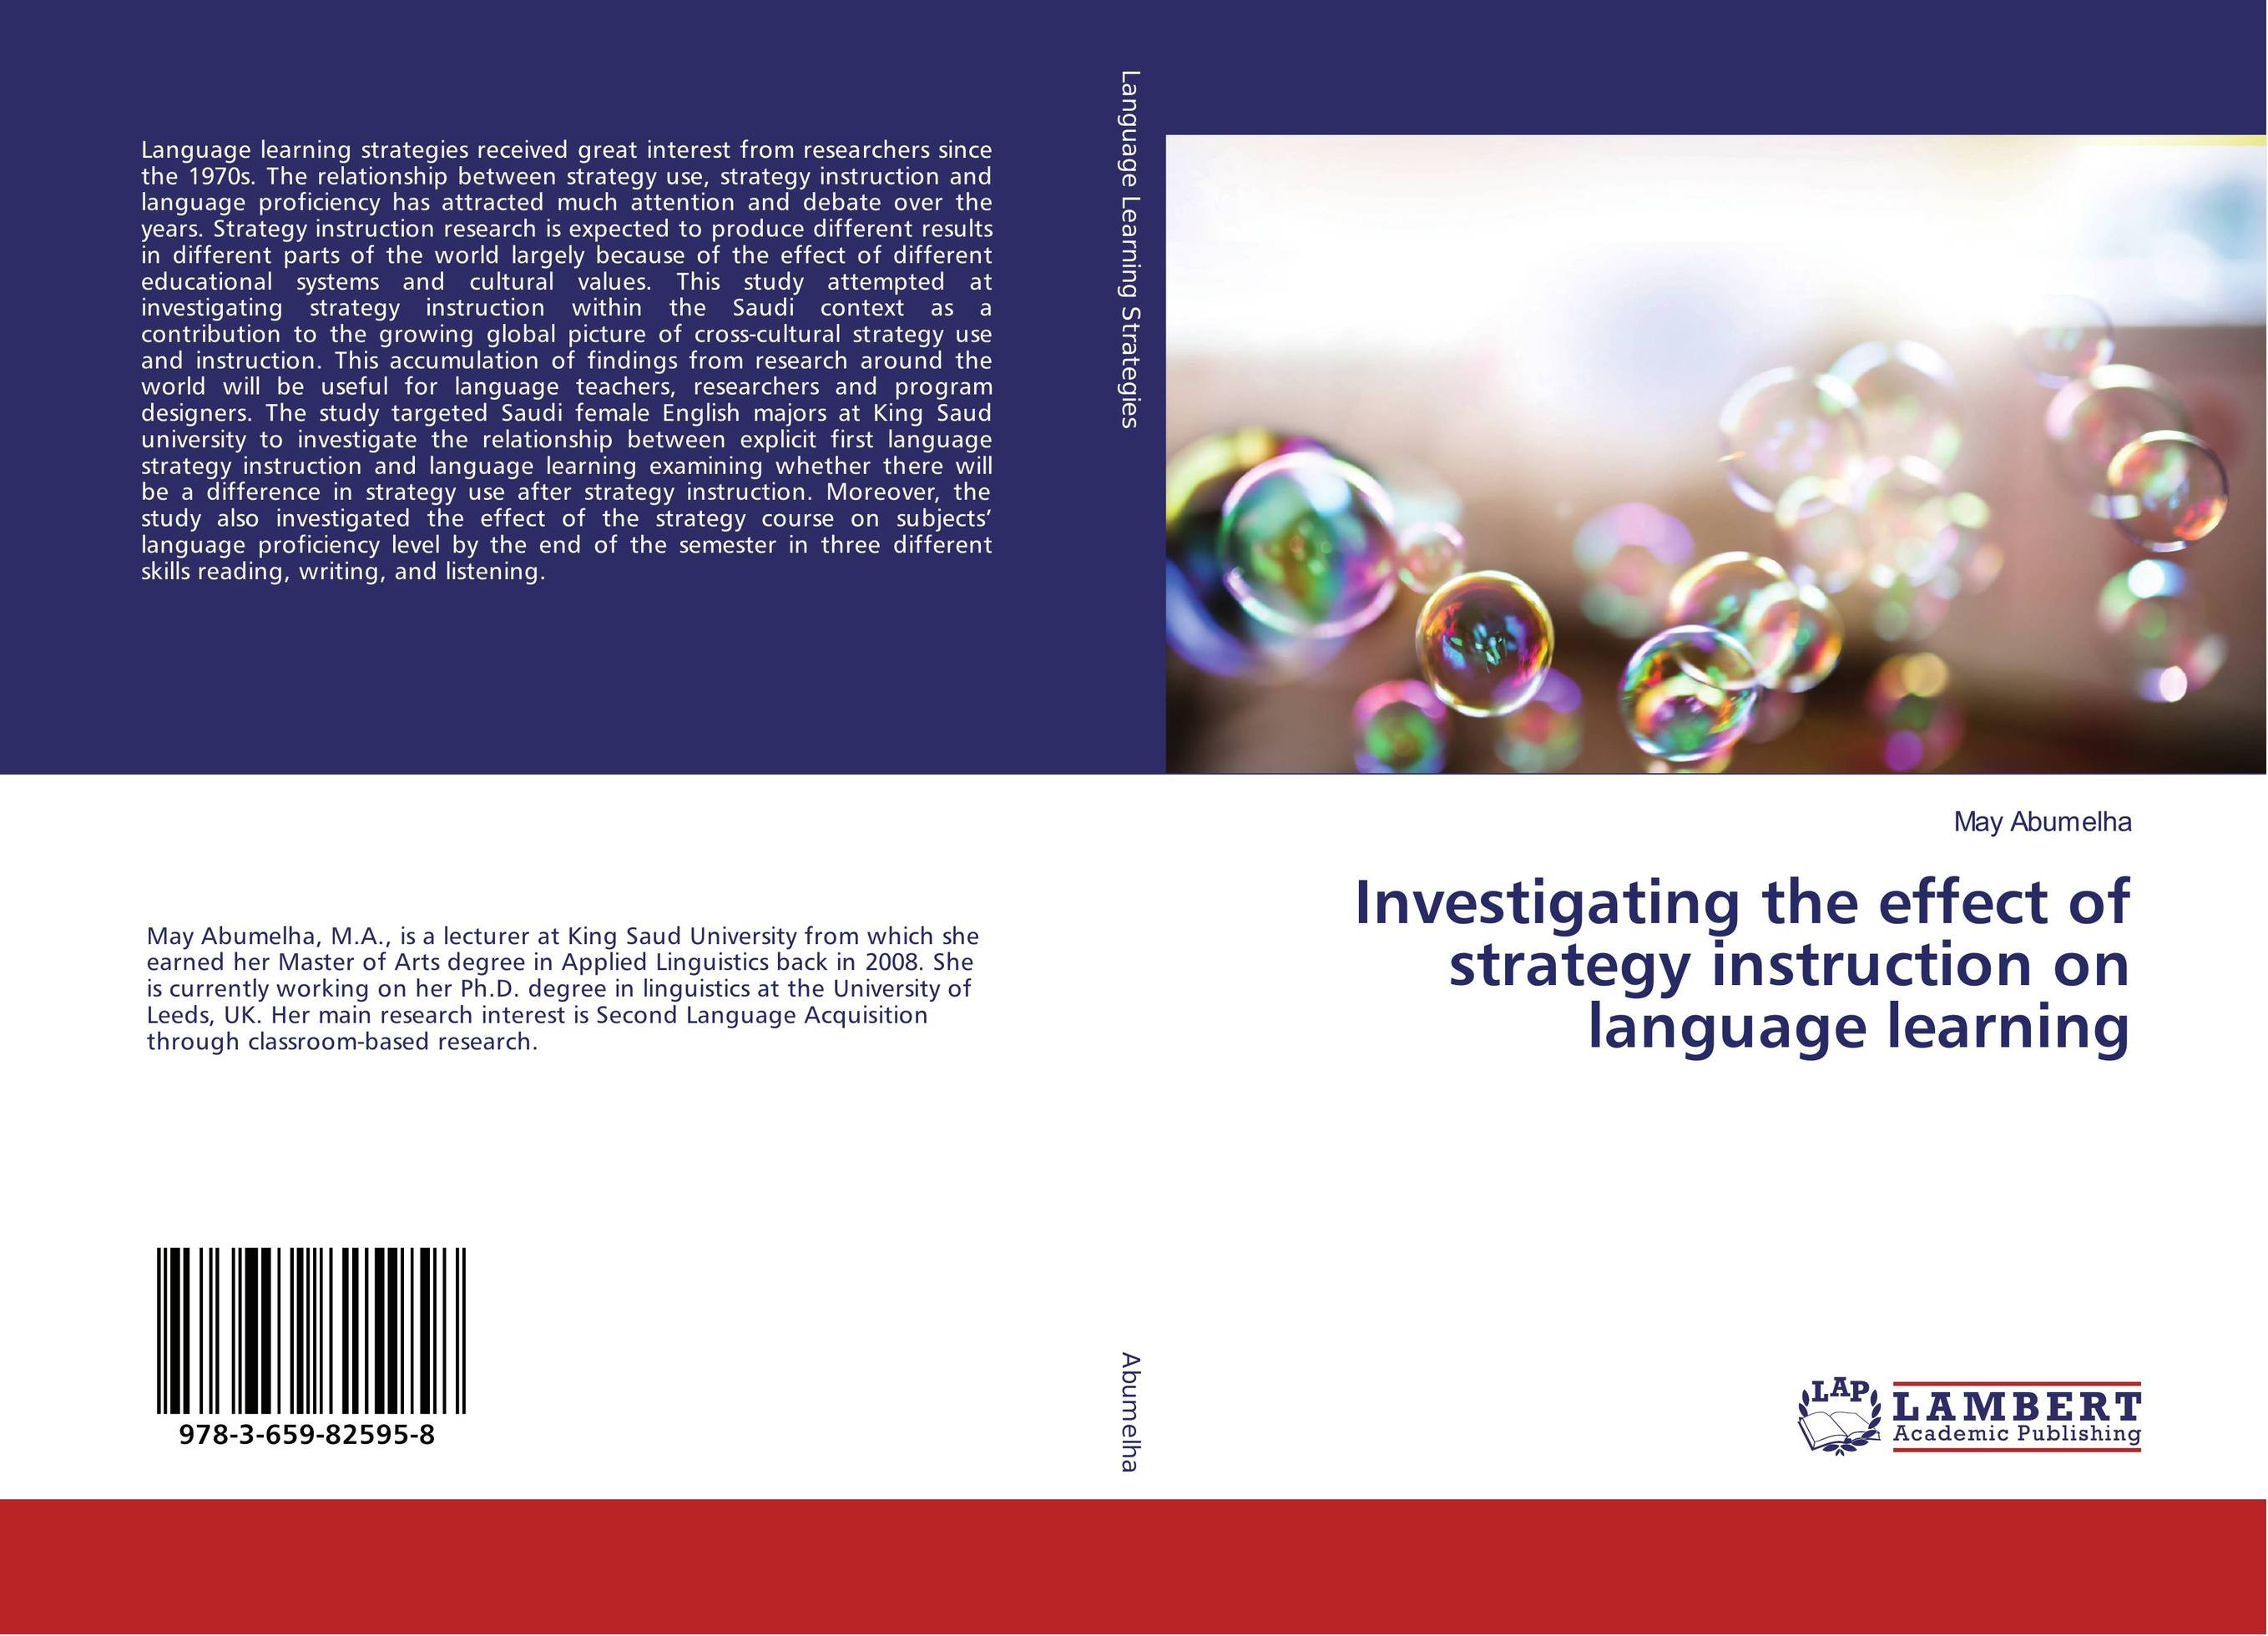 Investigating the effect of strategy instruction on language learning the effect of waterpipe smoke on vital organs of swiss mice